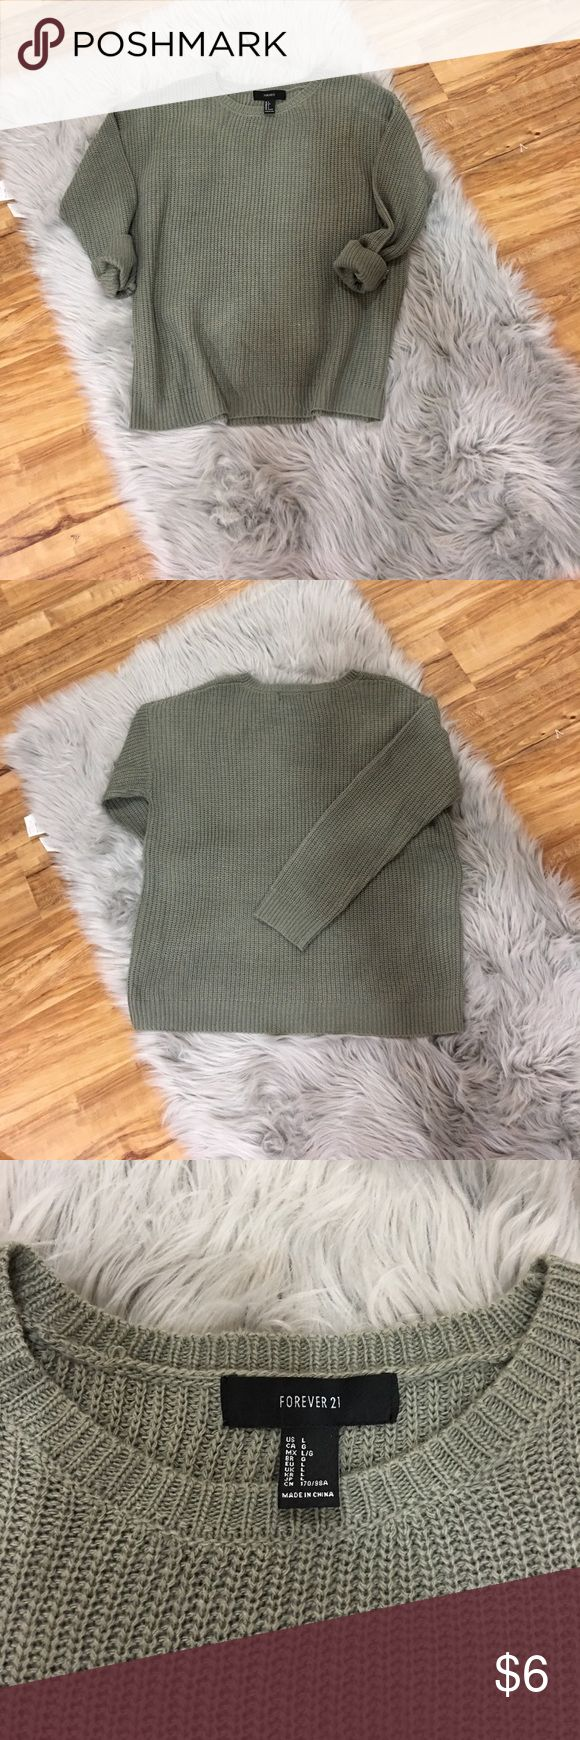 Forever 21 Sweater Sage green sweater. In great condition! Forever 21 Sweaters Crew & Scoop Necks